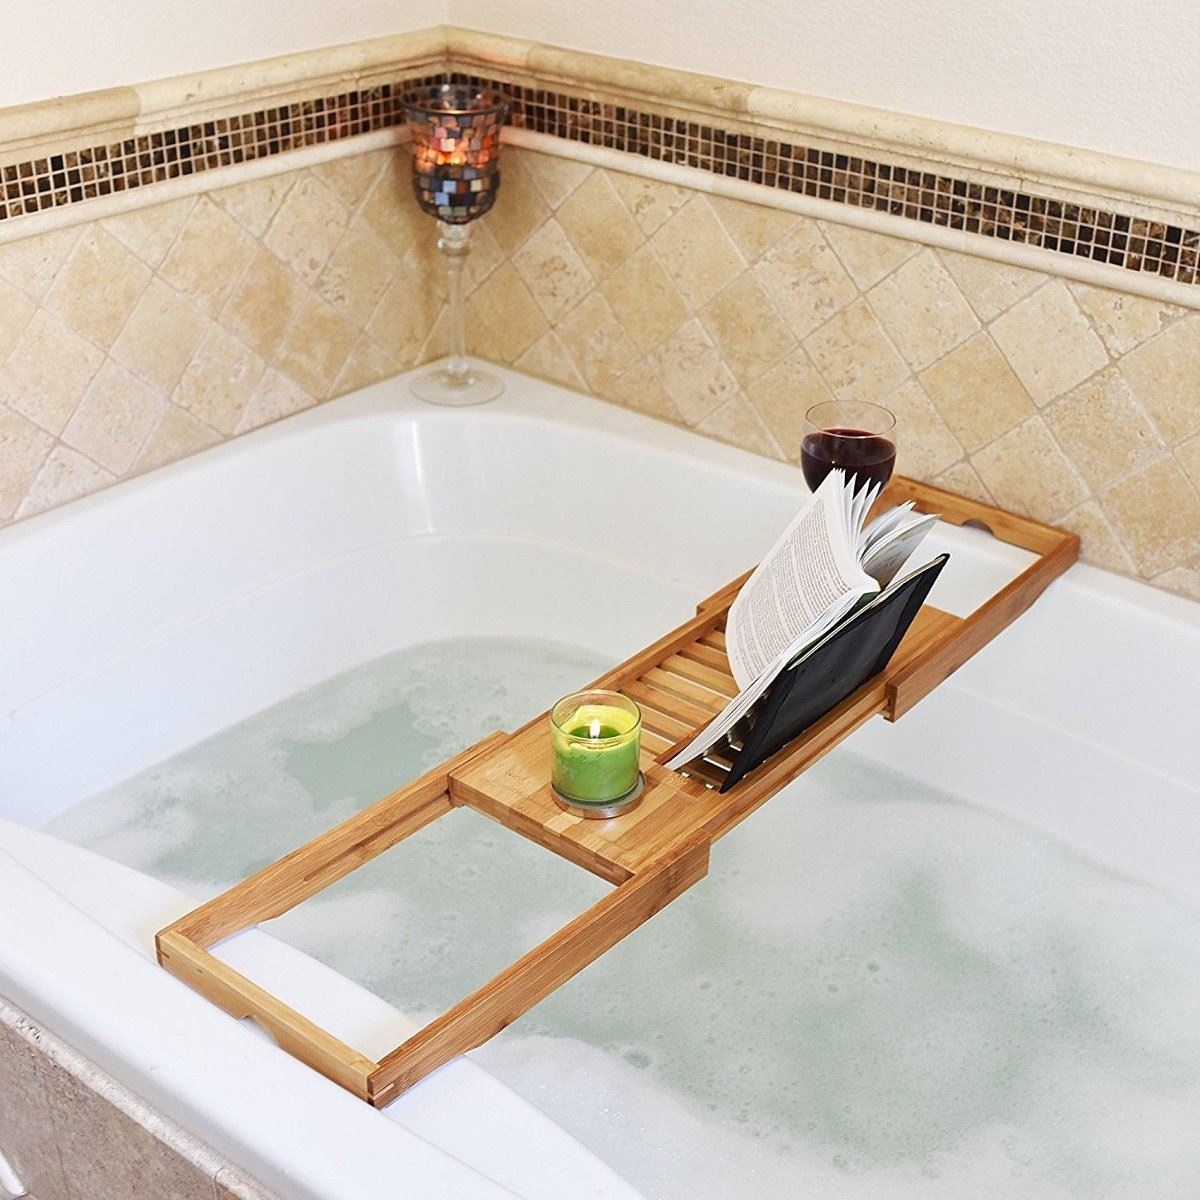 Bathroom Bath Tub Books phone Wine Cup Rack Shower Tray Holder Home ...